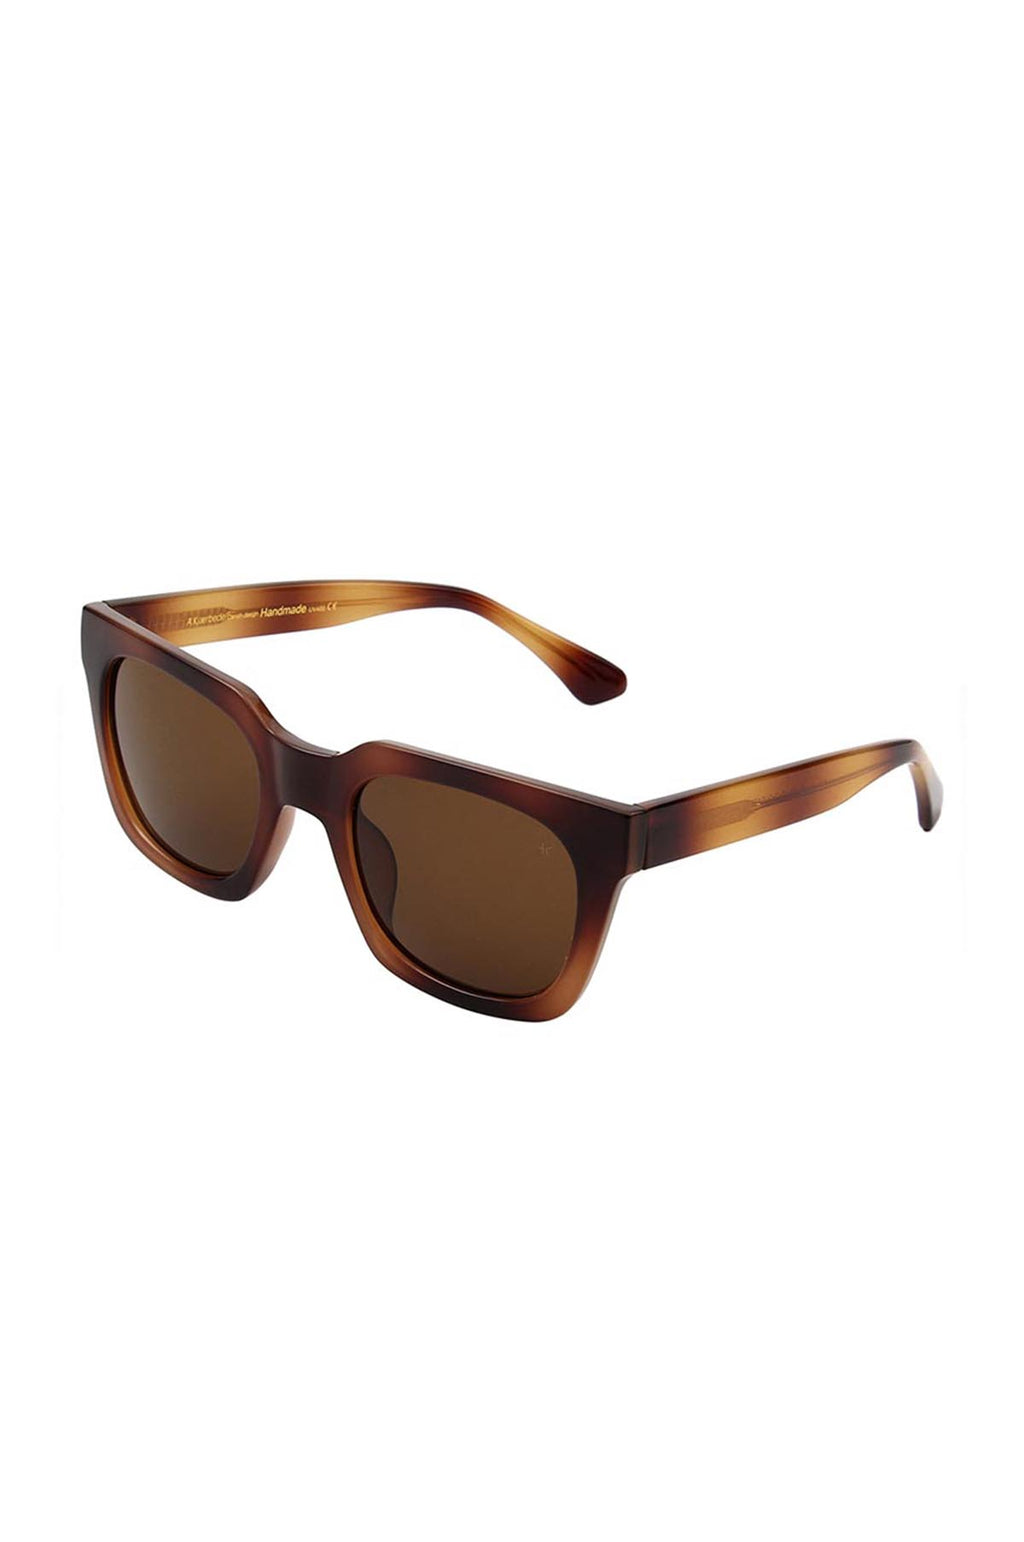 Nancy Sunglasses in Demi Brown